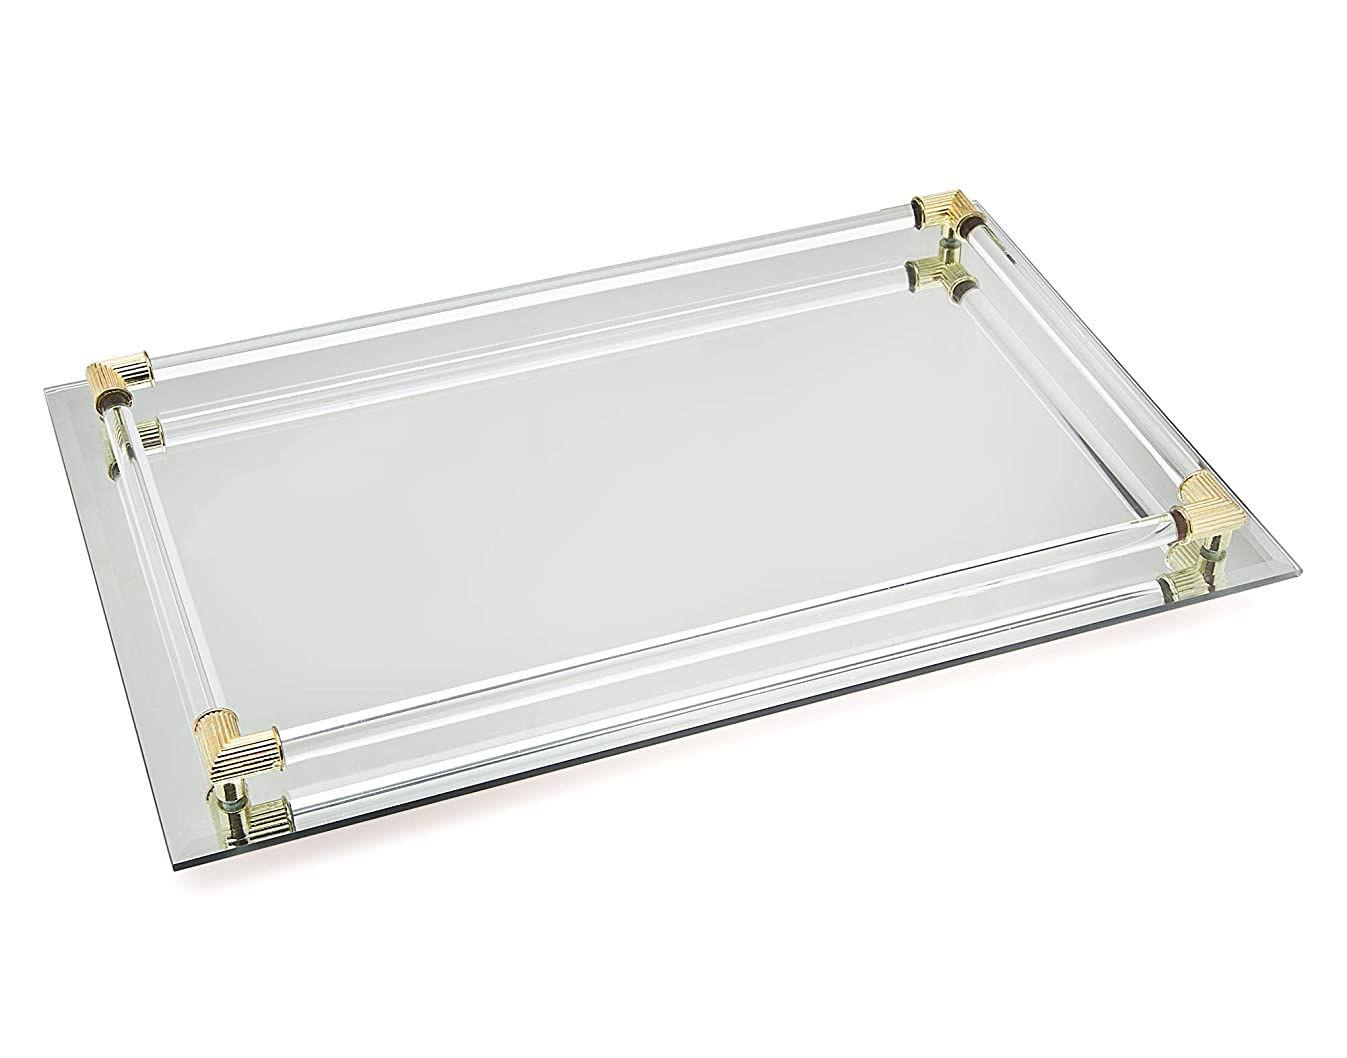 Studio Silversmith Mirror Vanity Tray with Gold Plated Accents - 8